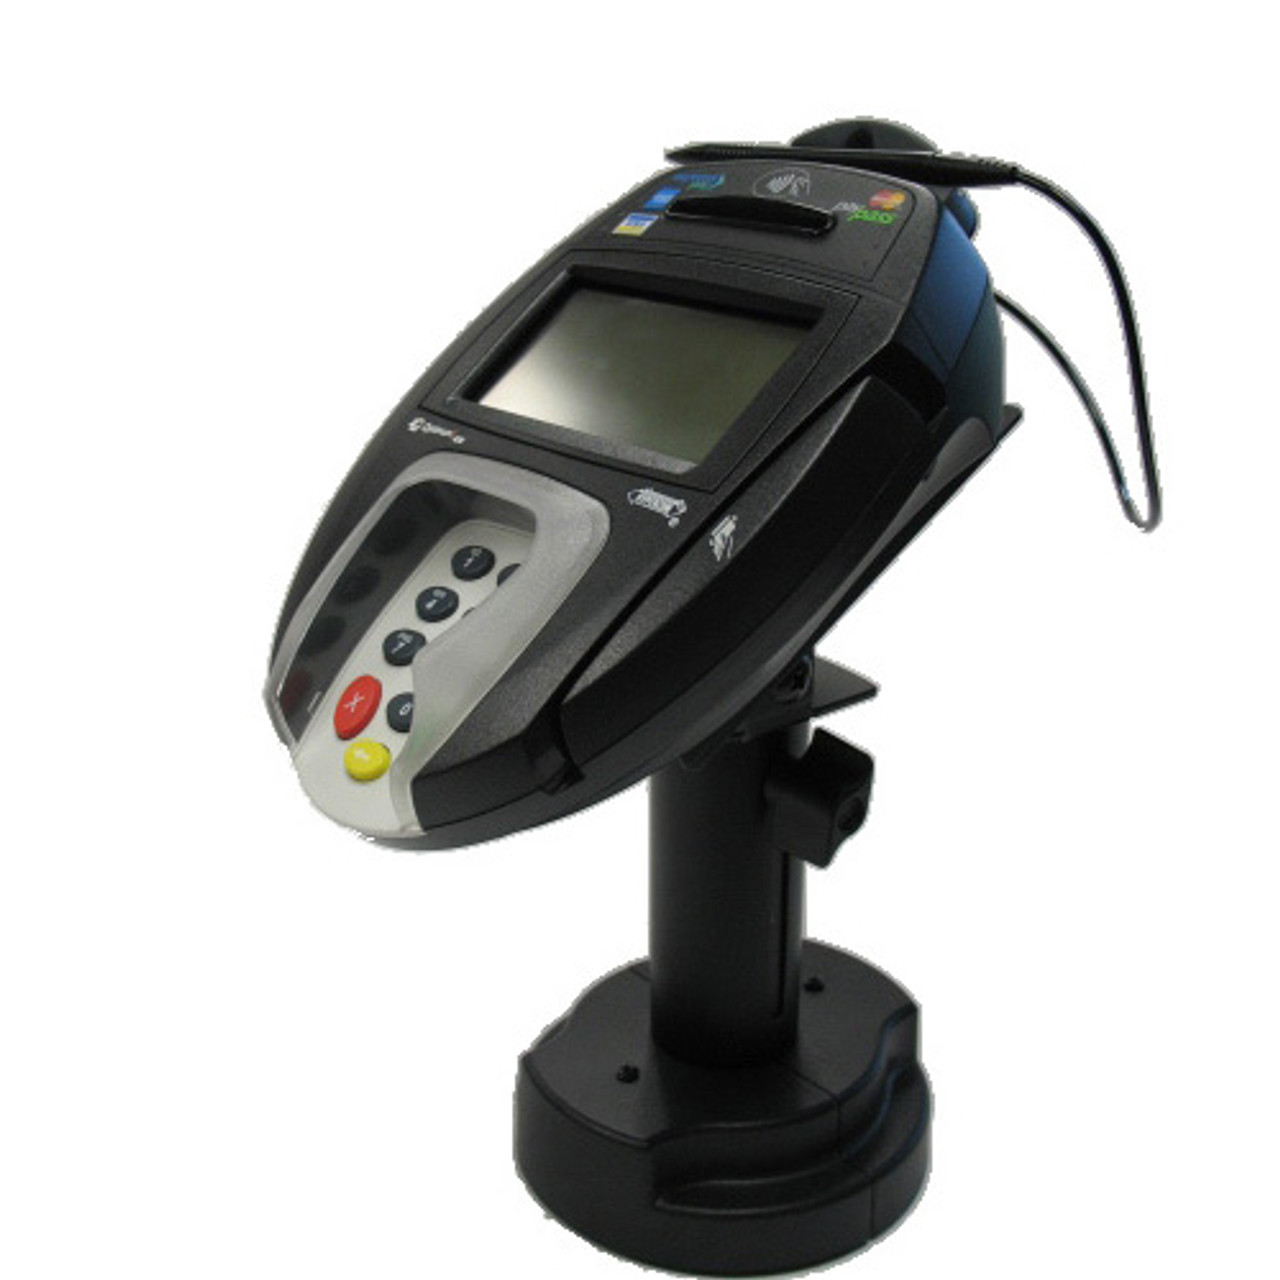 Swivel Stands Credit Card Stand Telescoping Pedestal VeriFone MX860